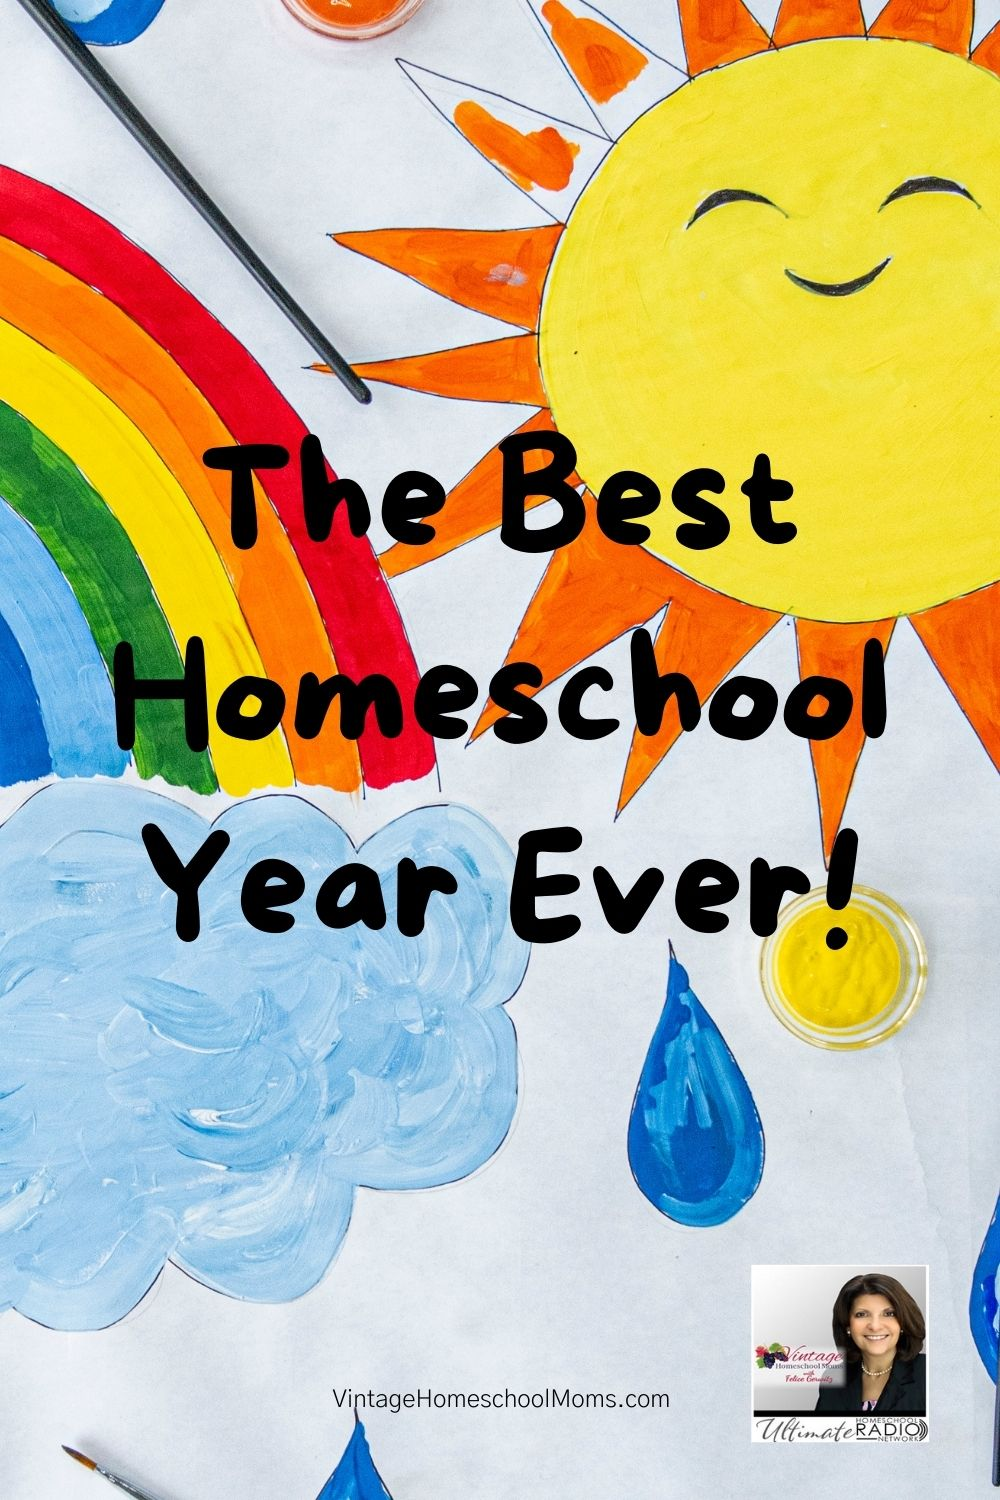 Let's Talk About making this The Best Homeschool Year Ever!